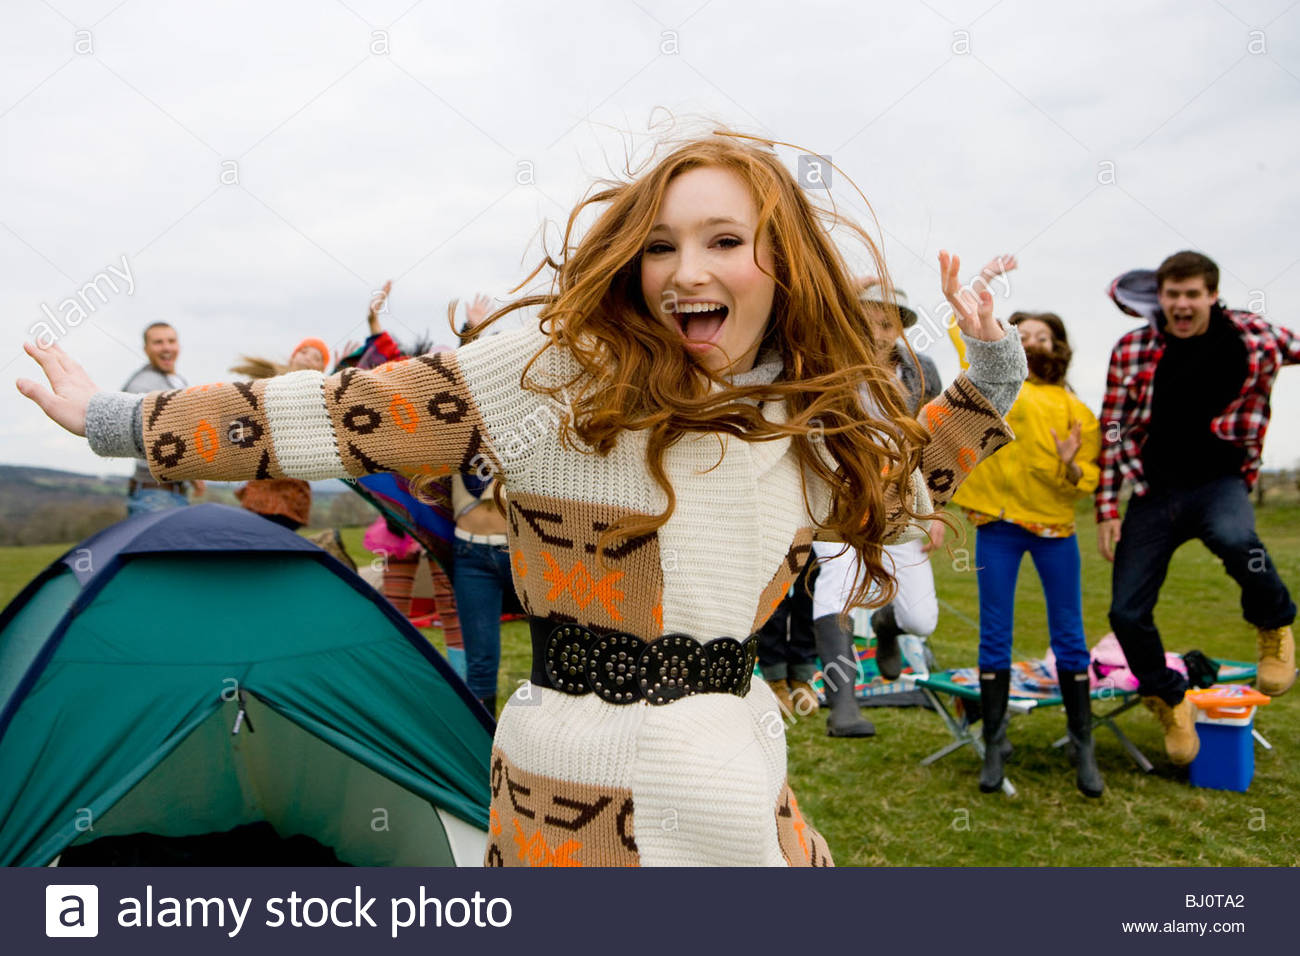 Excited friends camping and attending outdoor festival - Stock Image